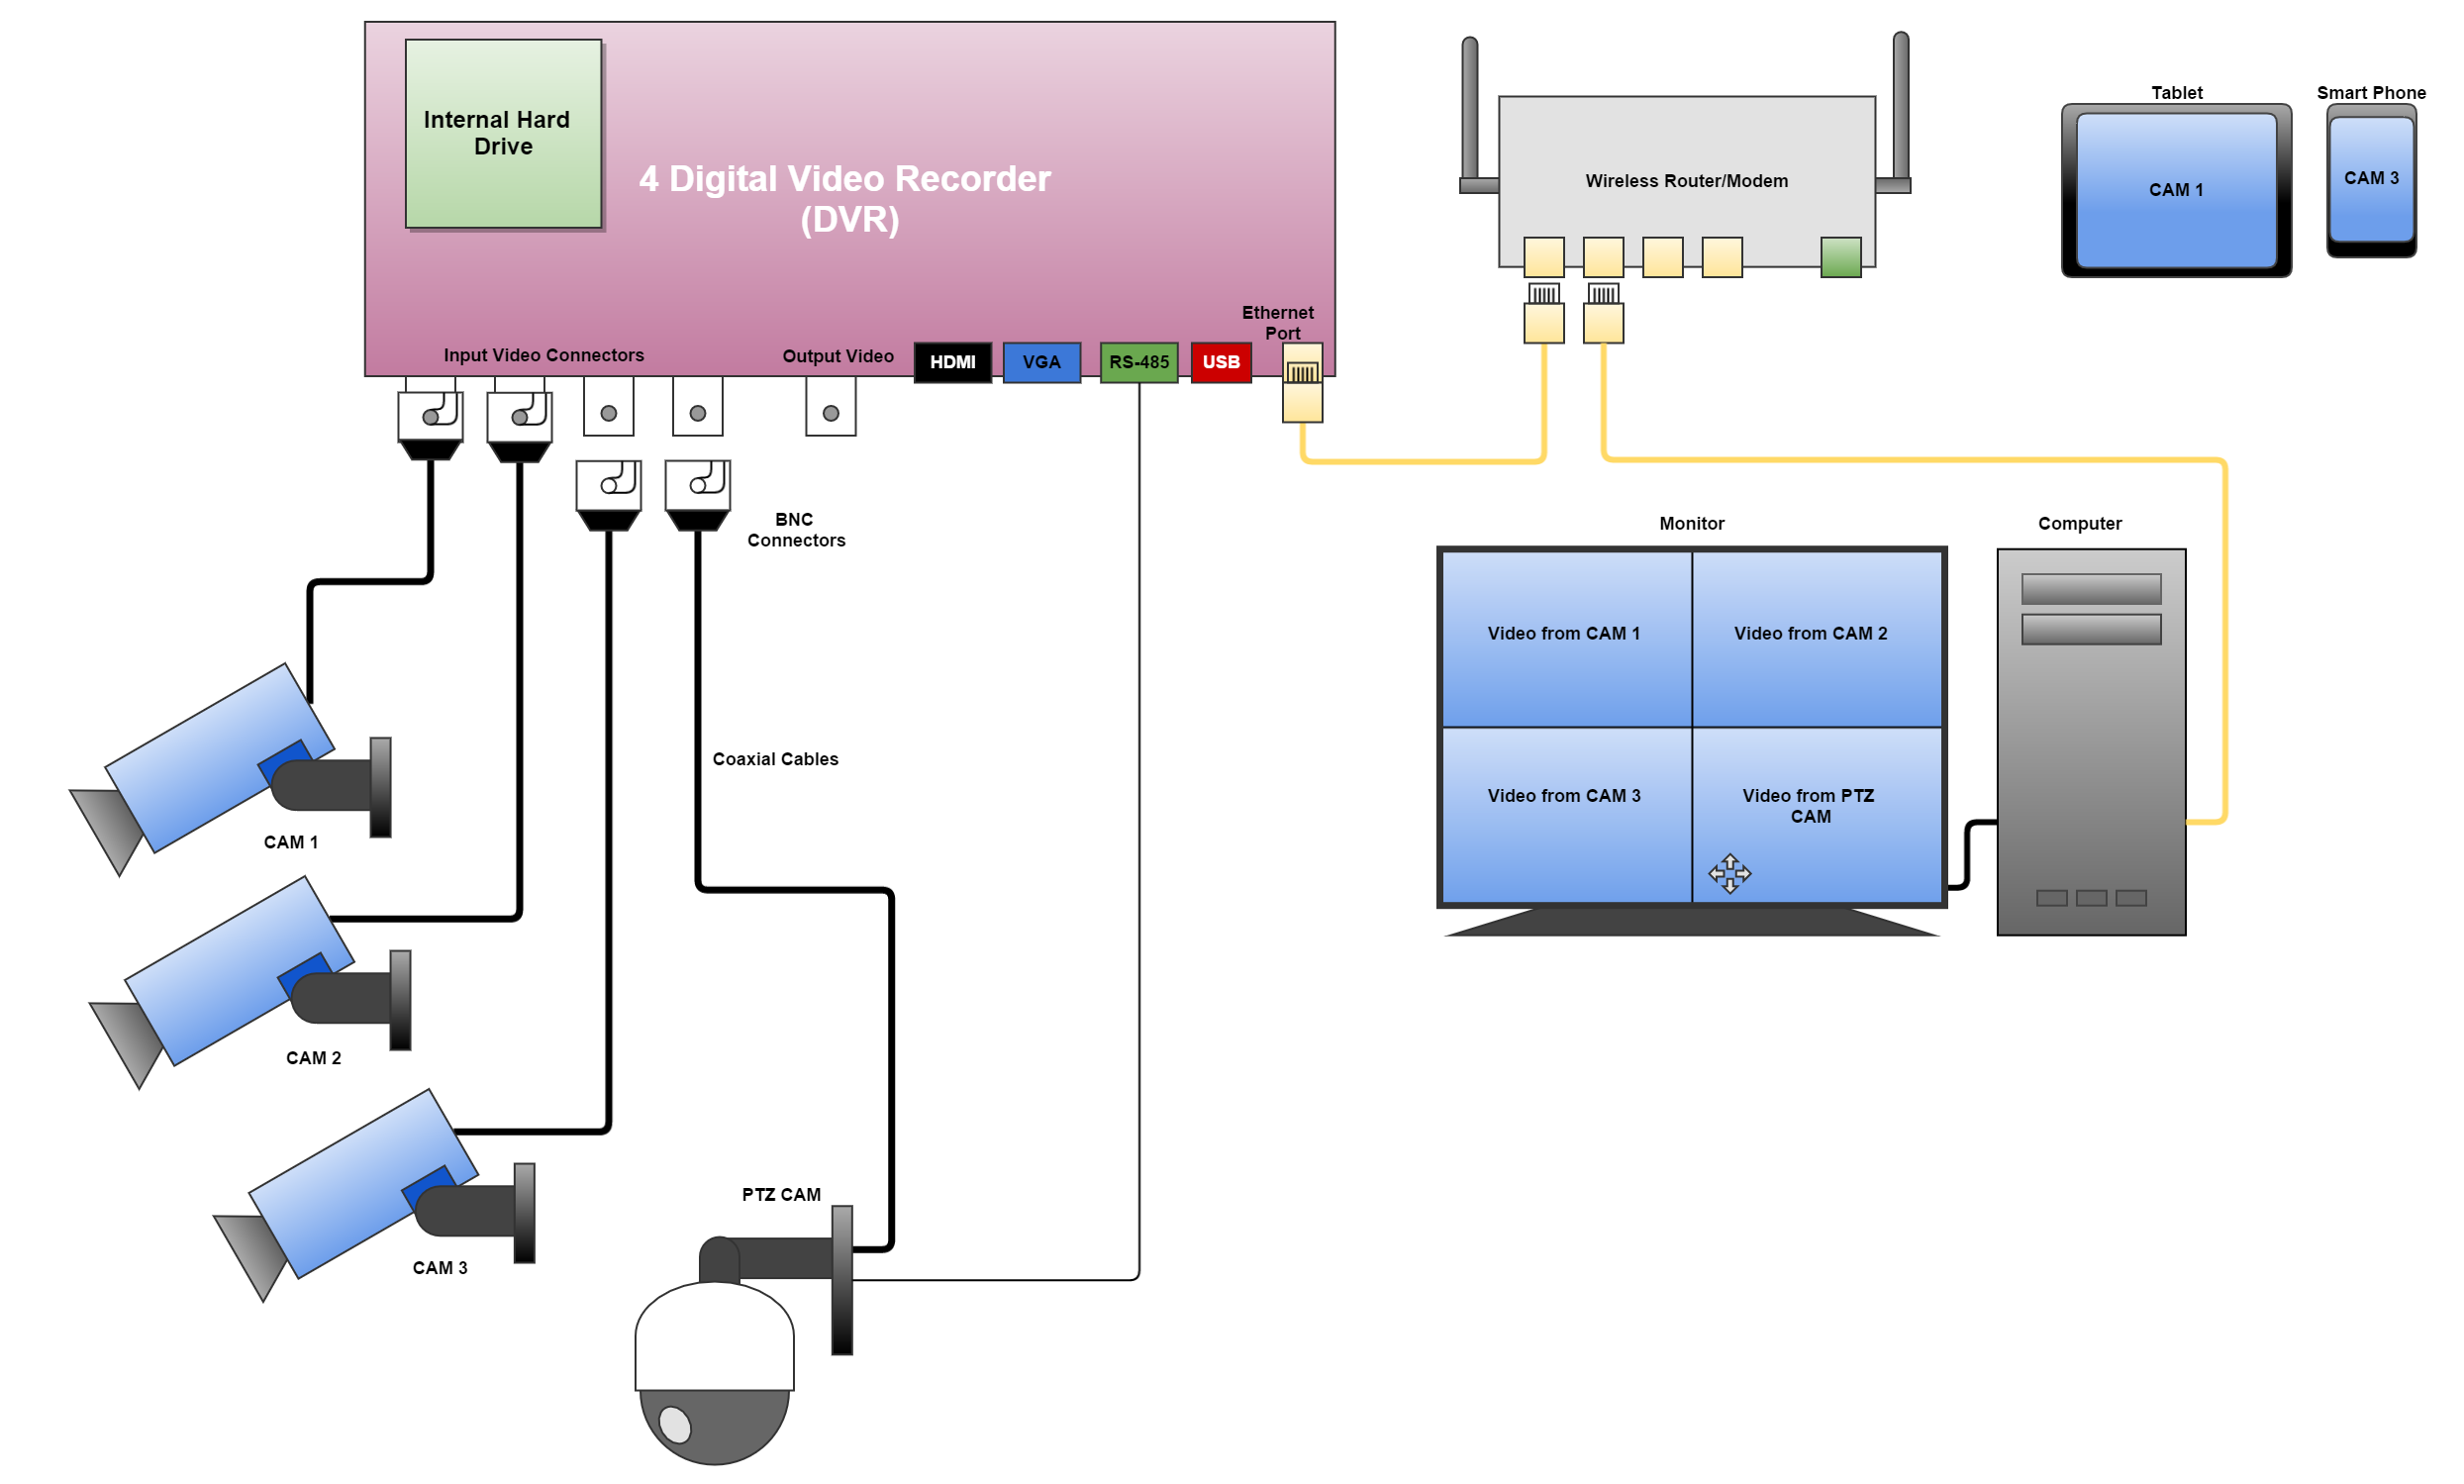 analogue calving camera systems part 1 dvr connection diagram connected to ethernet